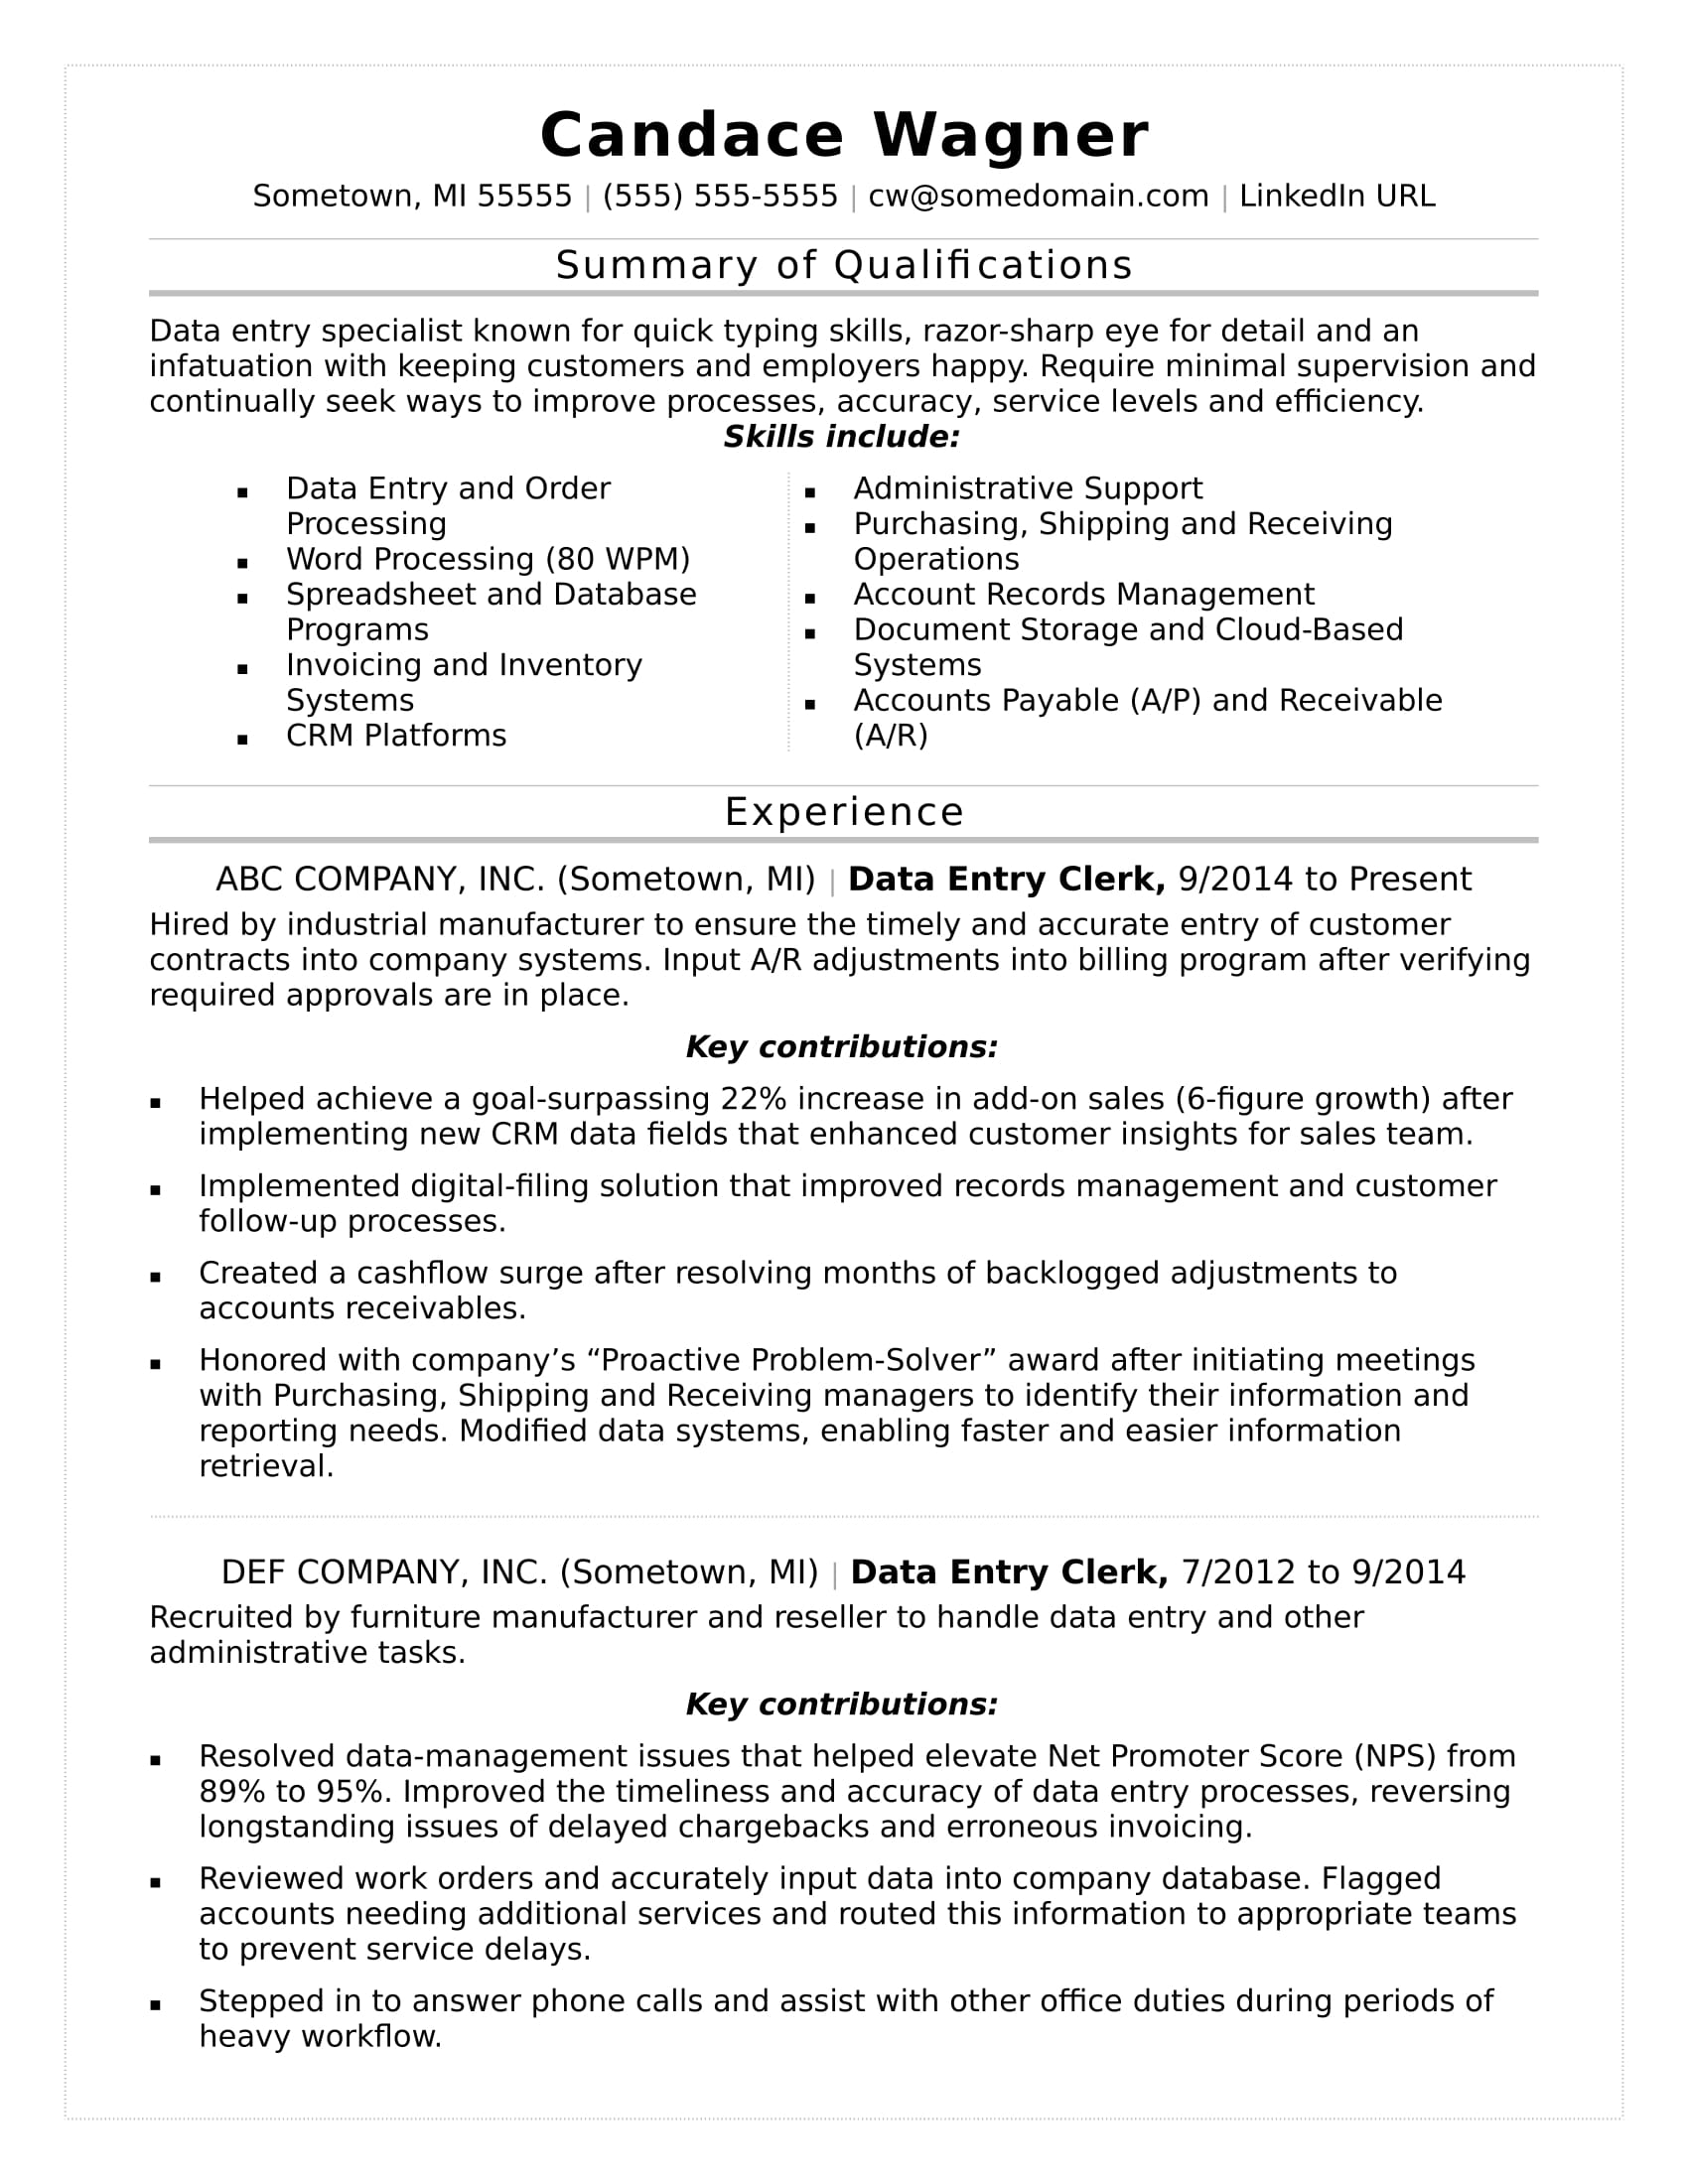 resume Examples Of Career Overviews For Resume data entry resume sample monster com sample